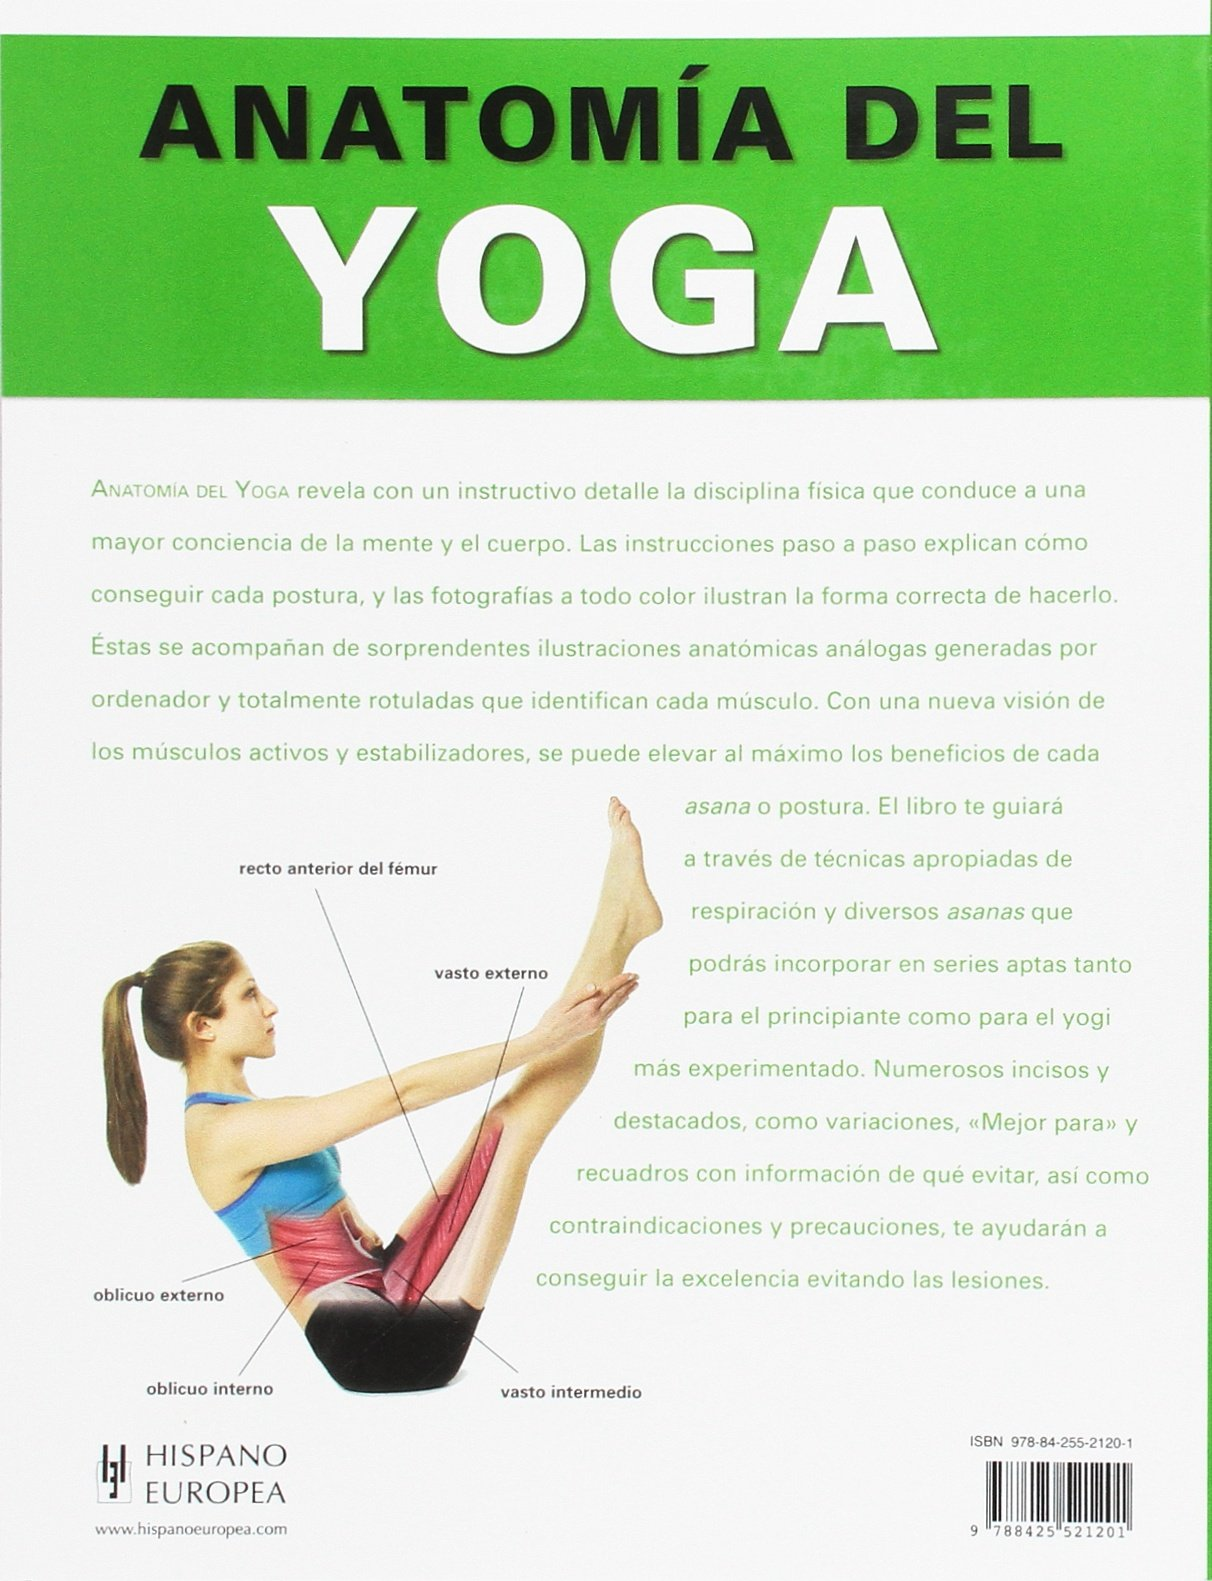 Anatomía del yoga: Abigail Ellsworth: 9788425521201: Amazon.com: Books